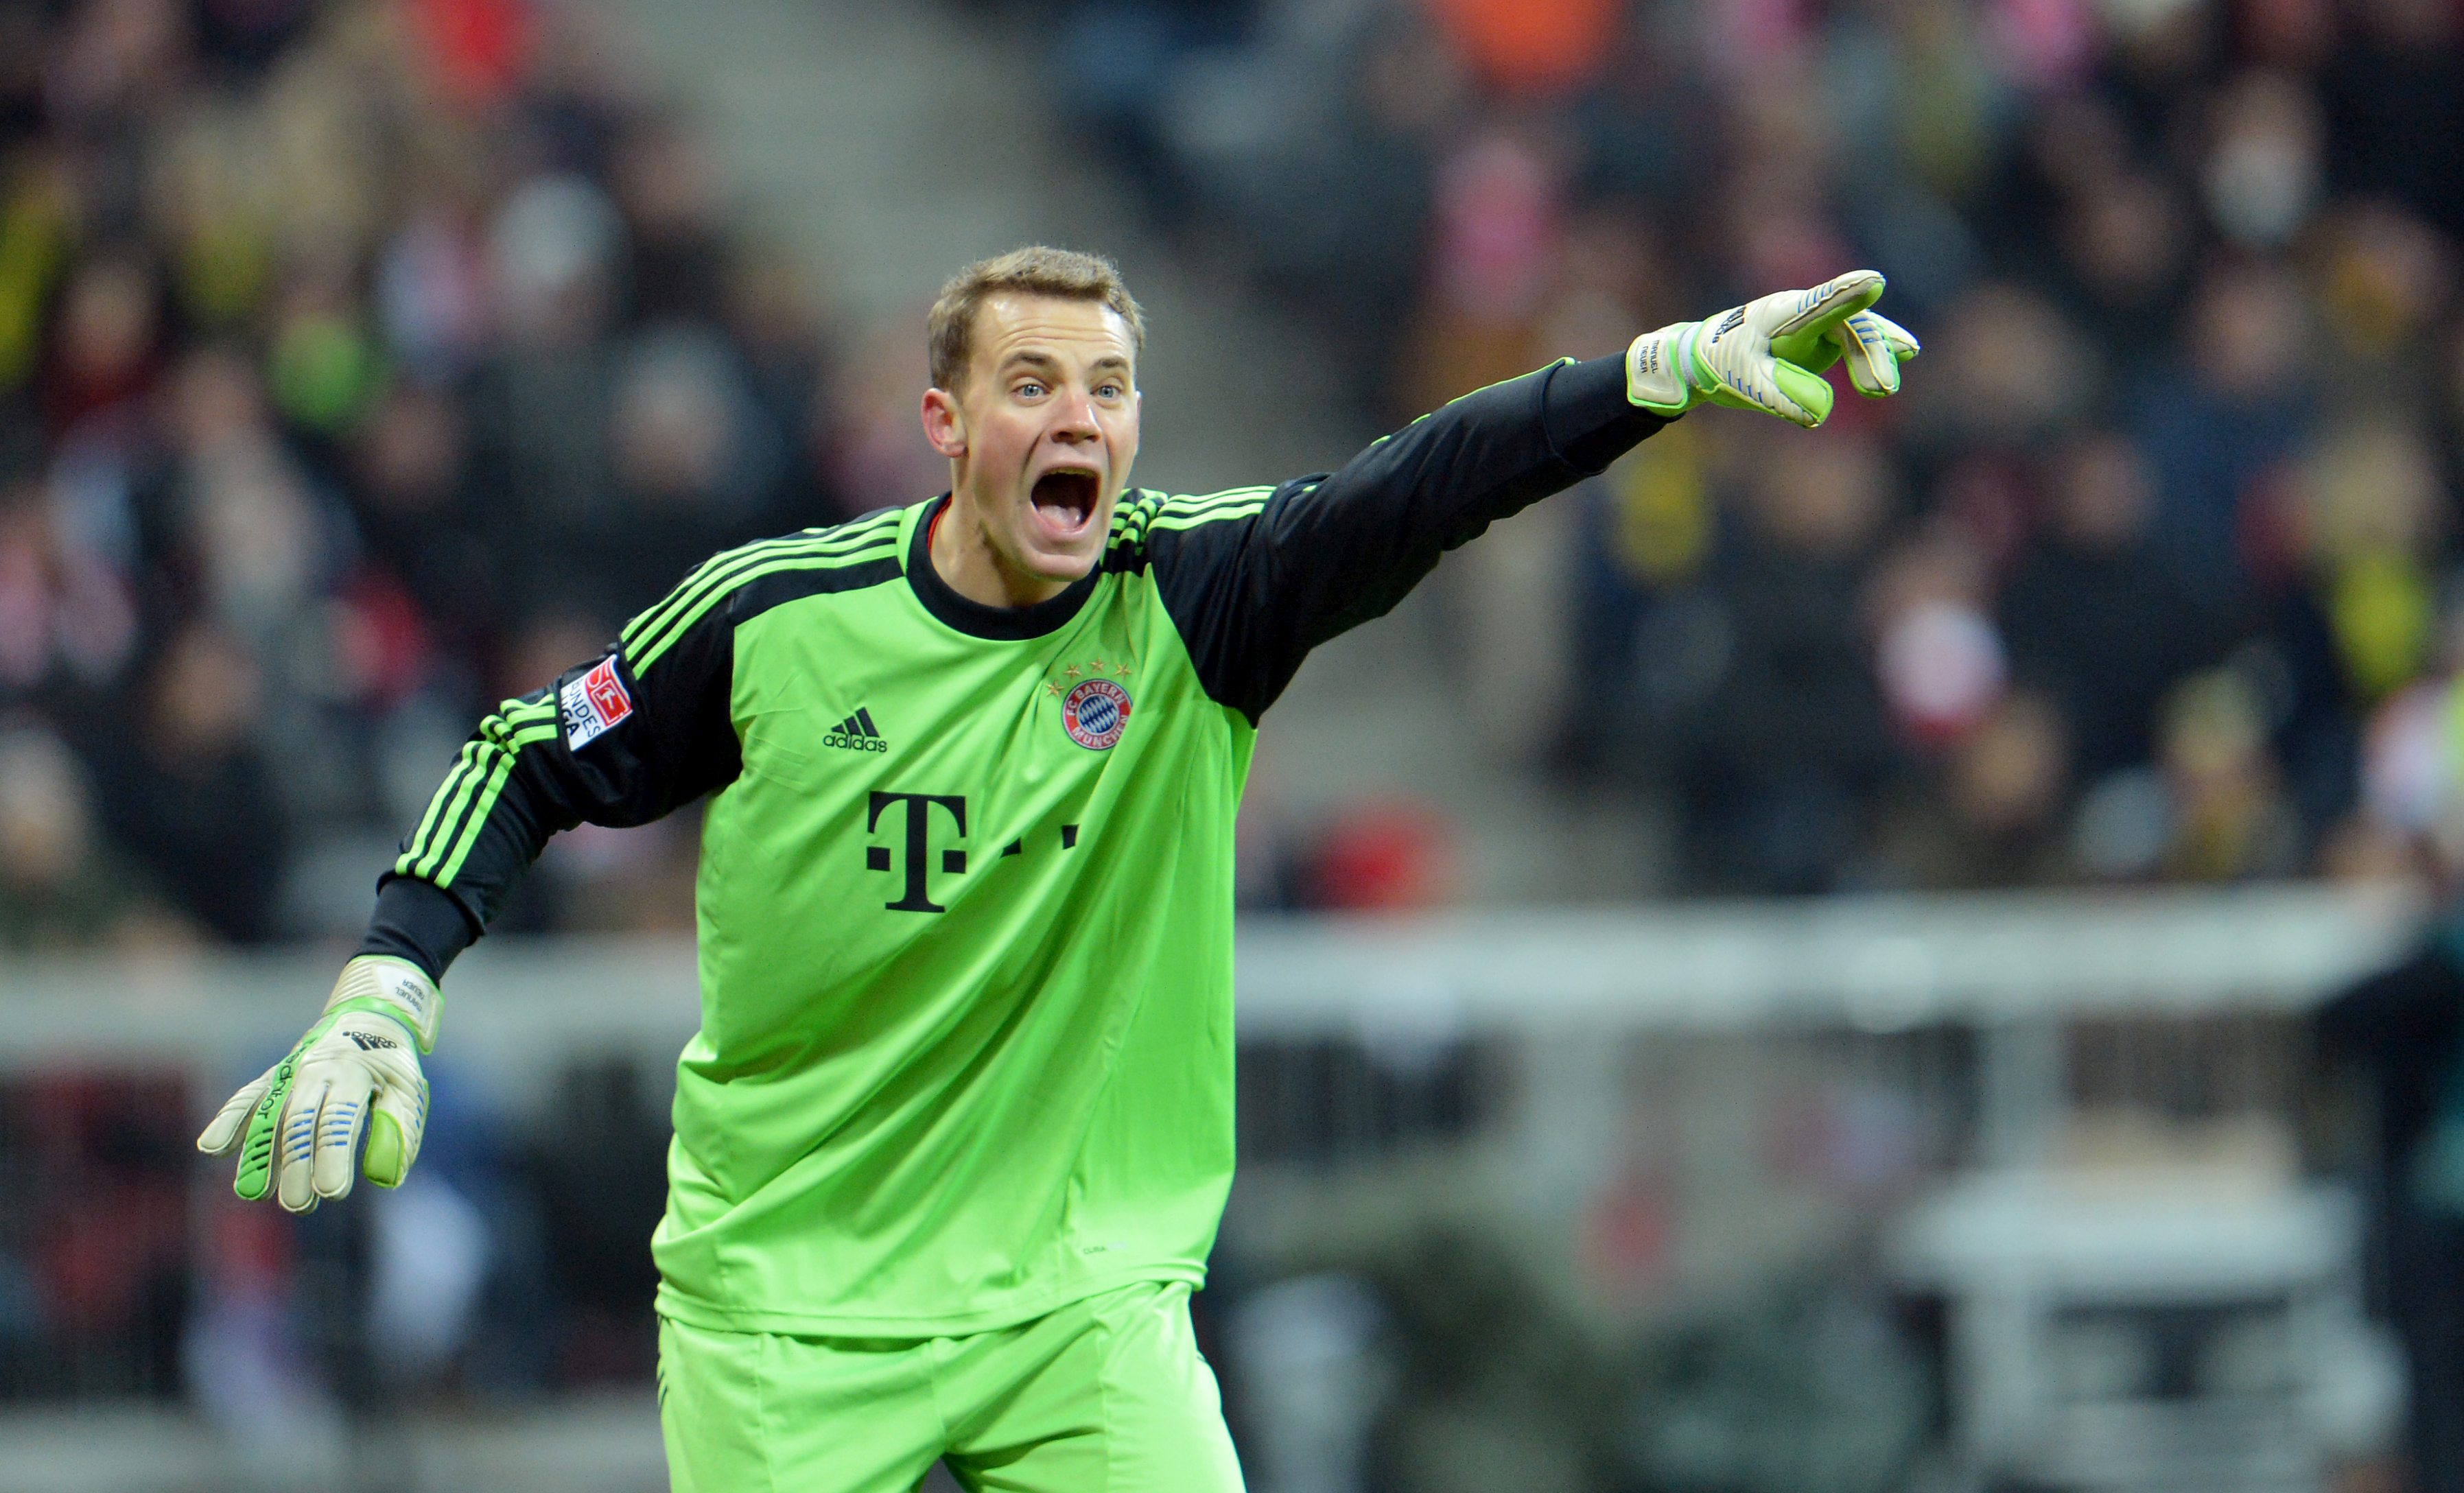 Emotional Wallpapers With Quotes Manuel Neuer Wallpaper Hd